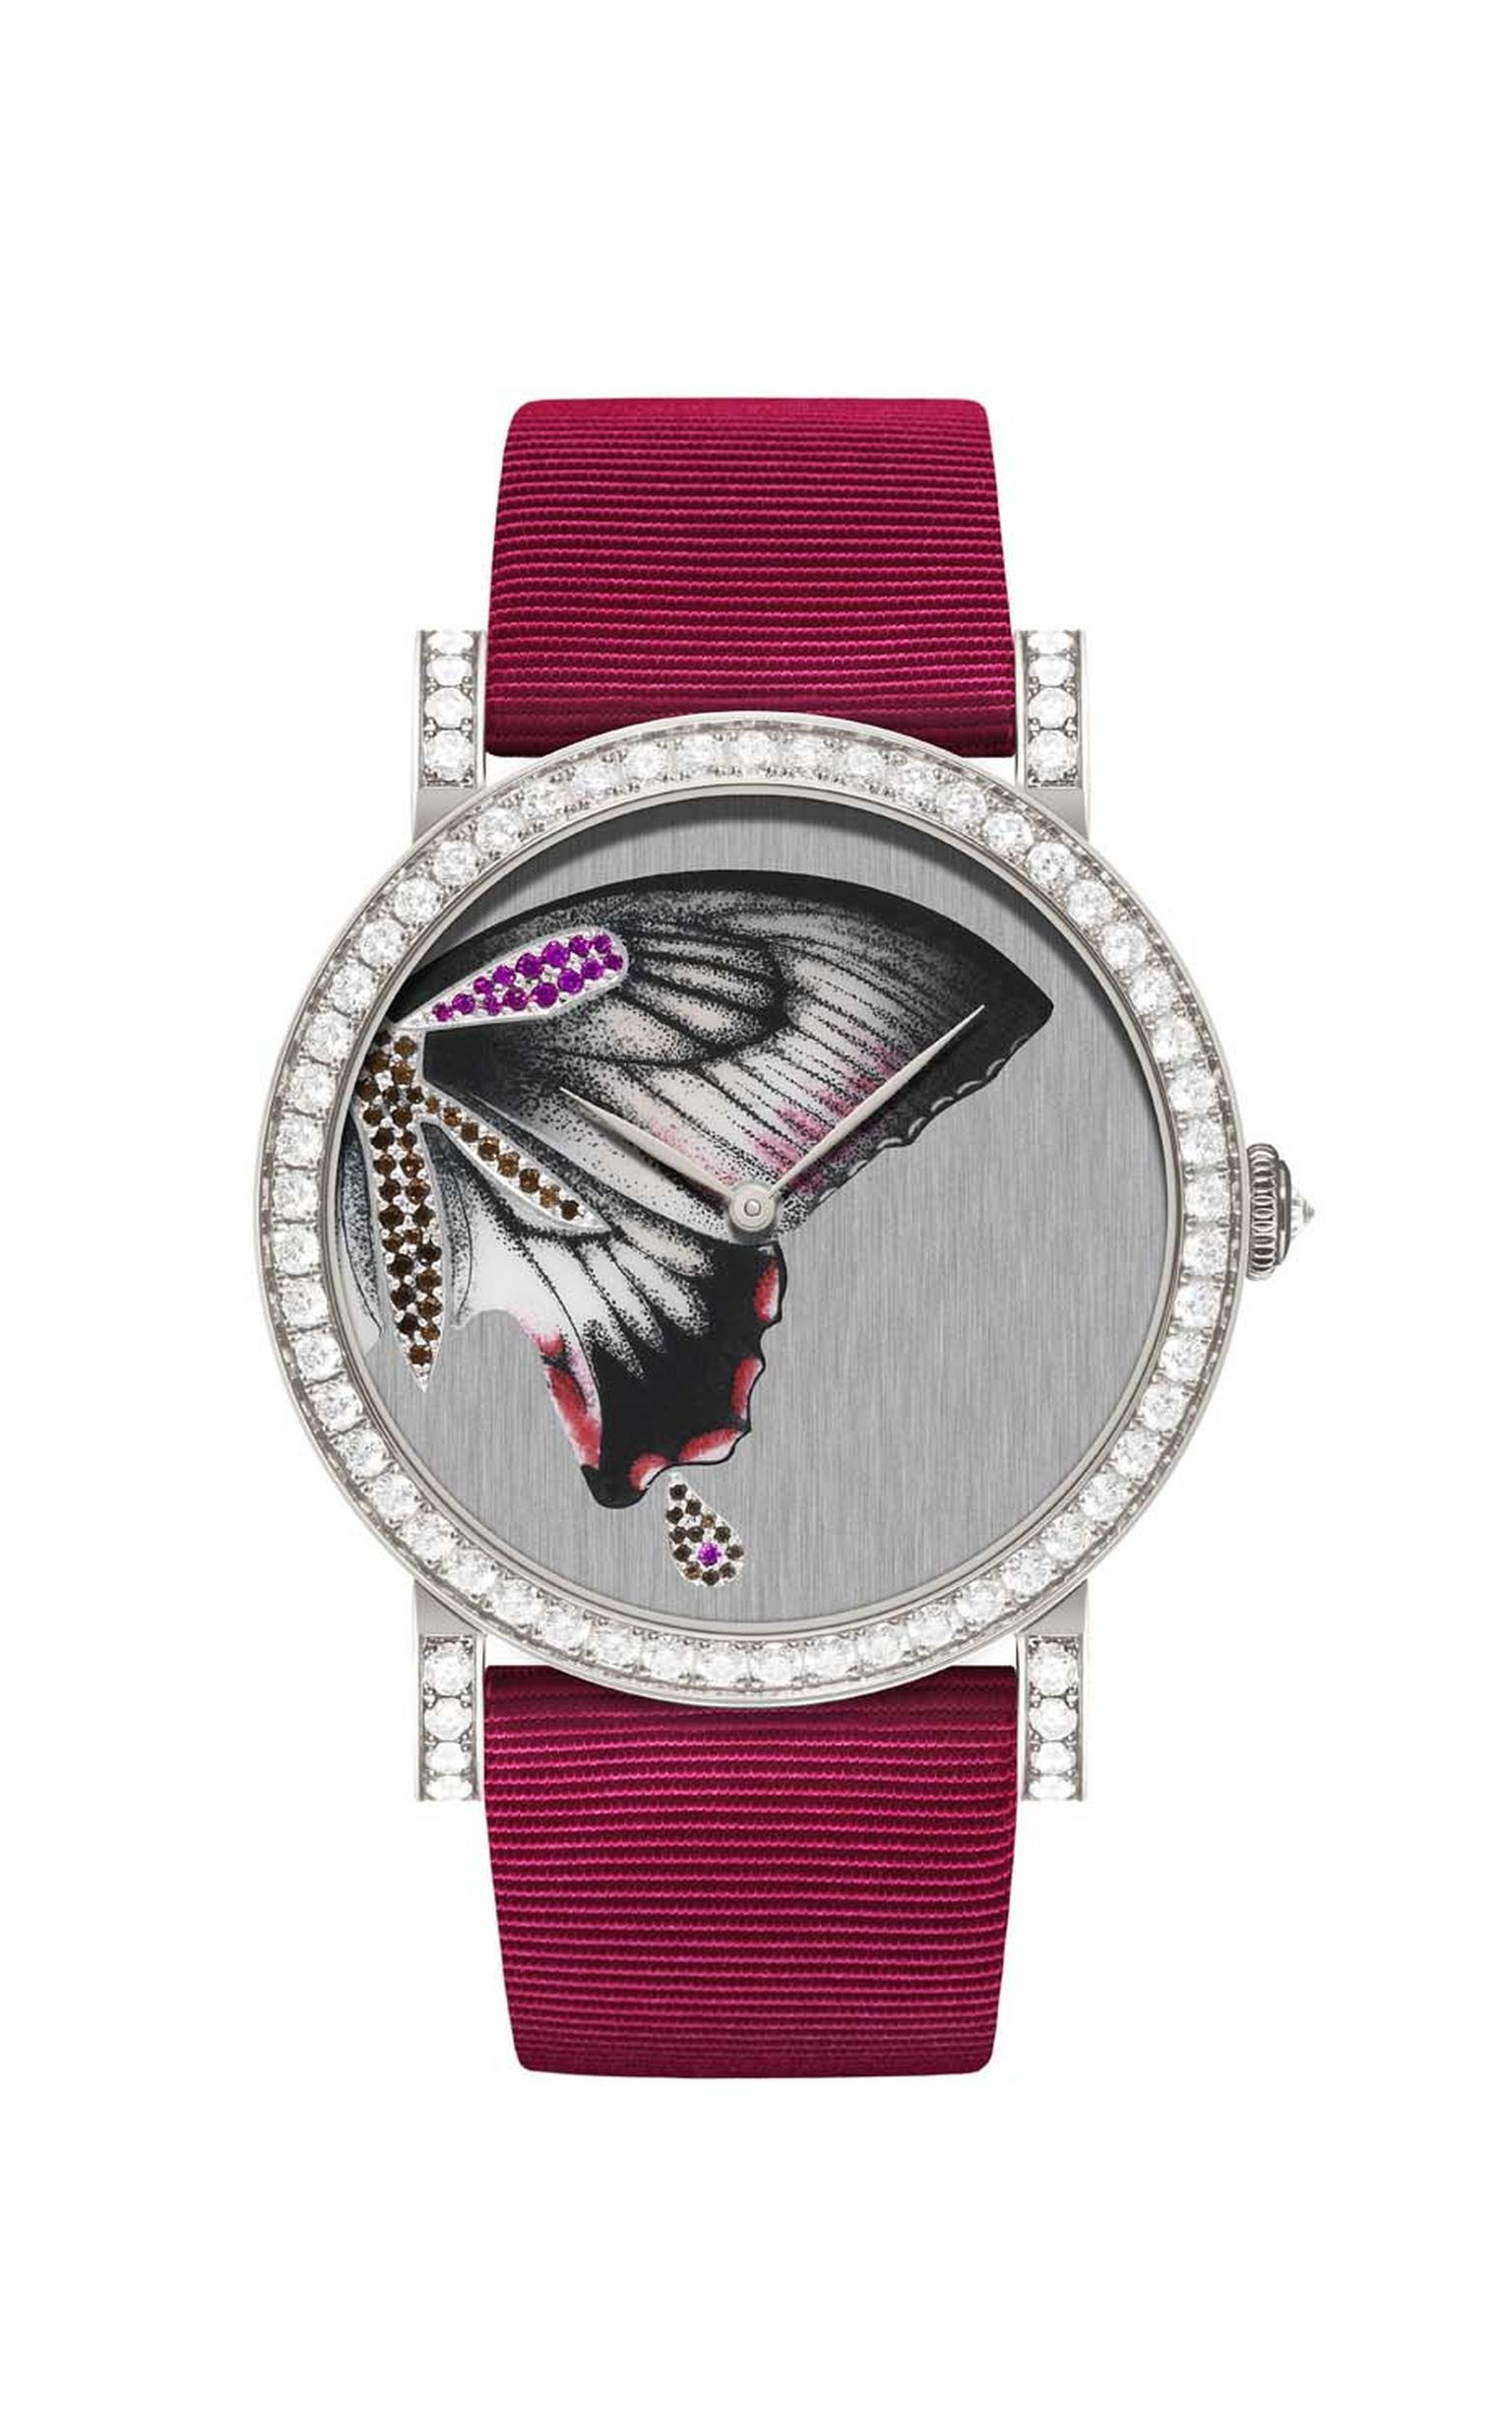 One-of-a-kind DeLaneau Rondo Butterfly Wing automatic watch